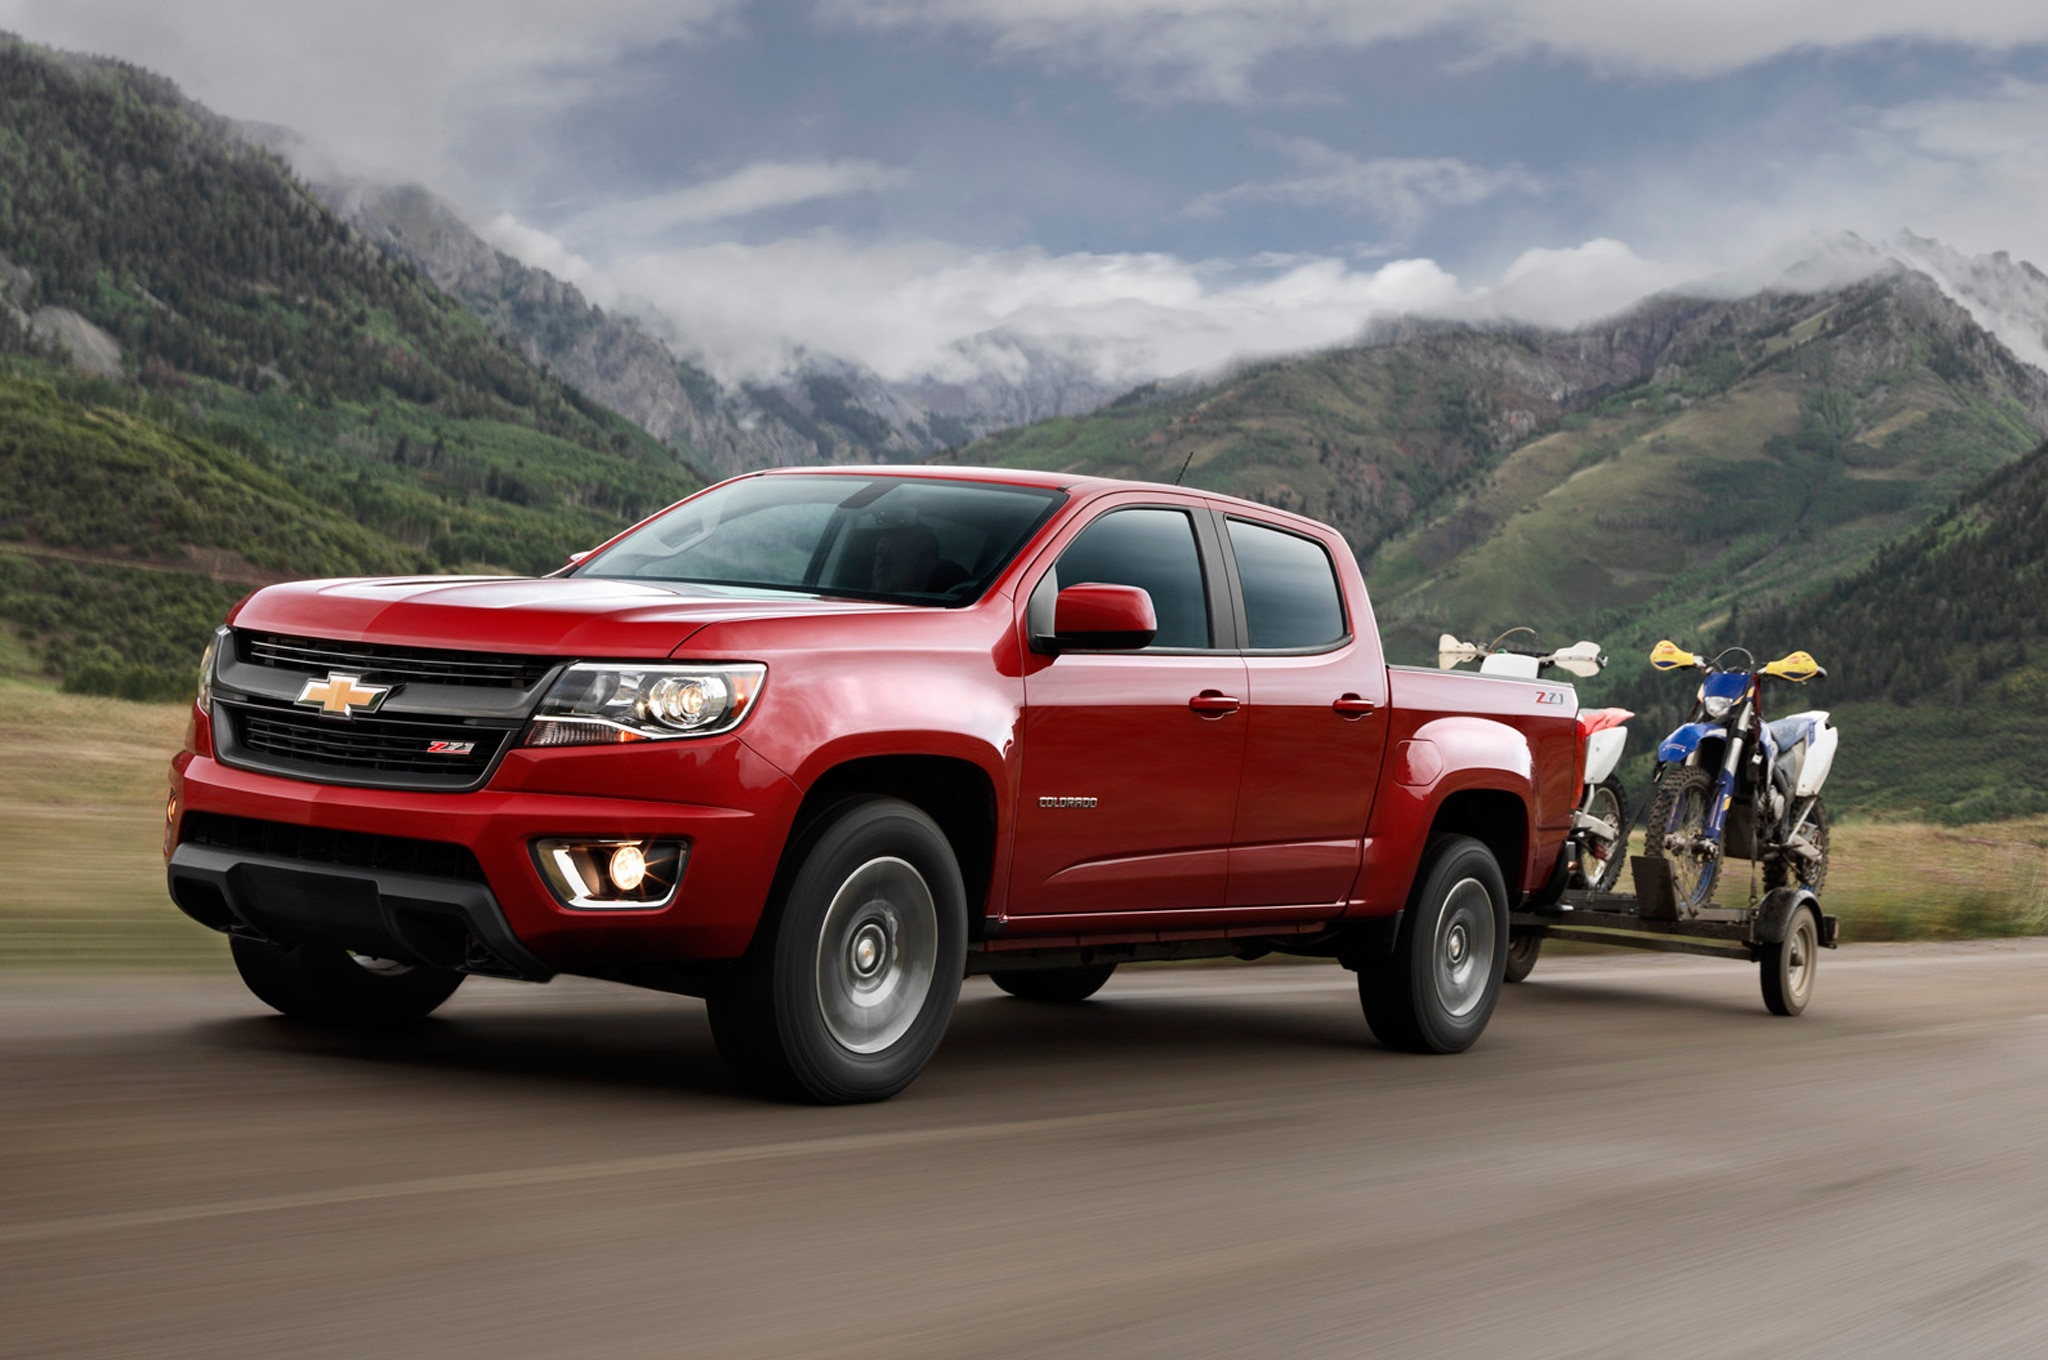 2015 Chevrolet Colorado Slightly Heavier Than Tacoma, Lighter Than Frontier